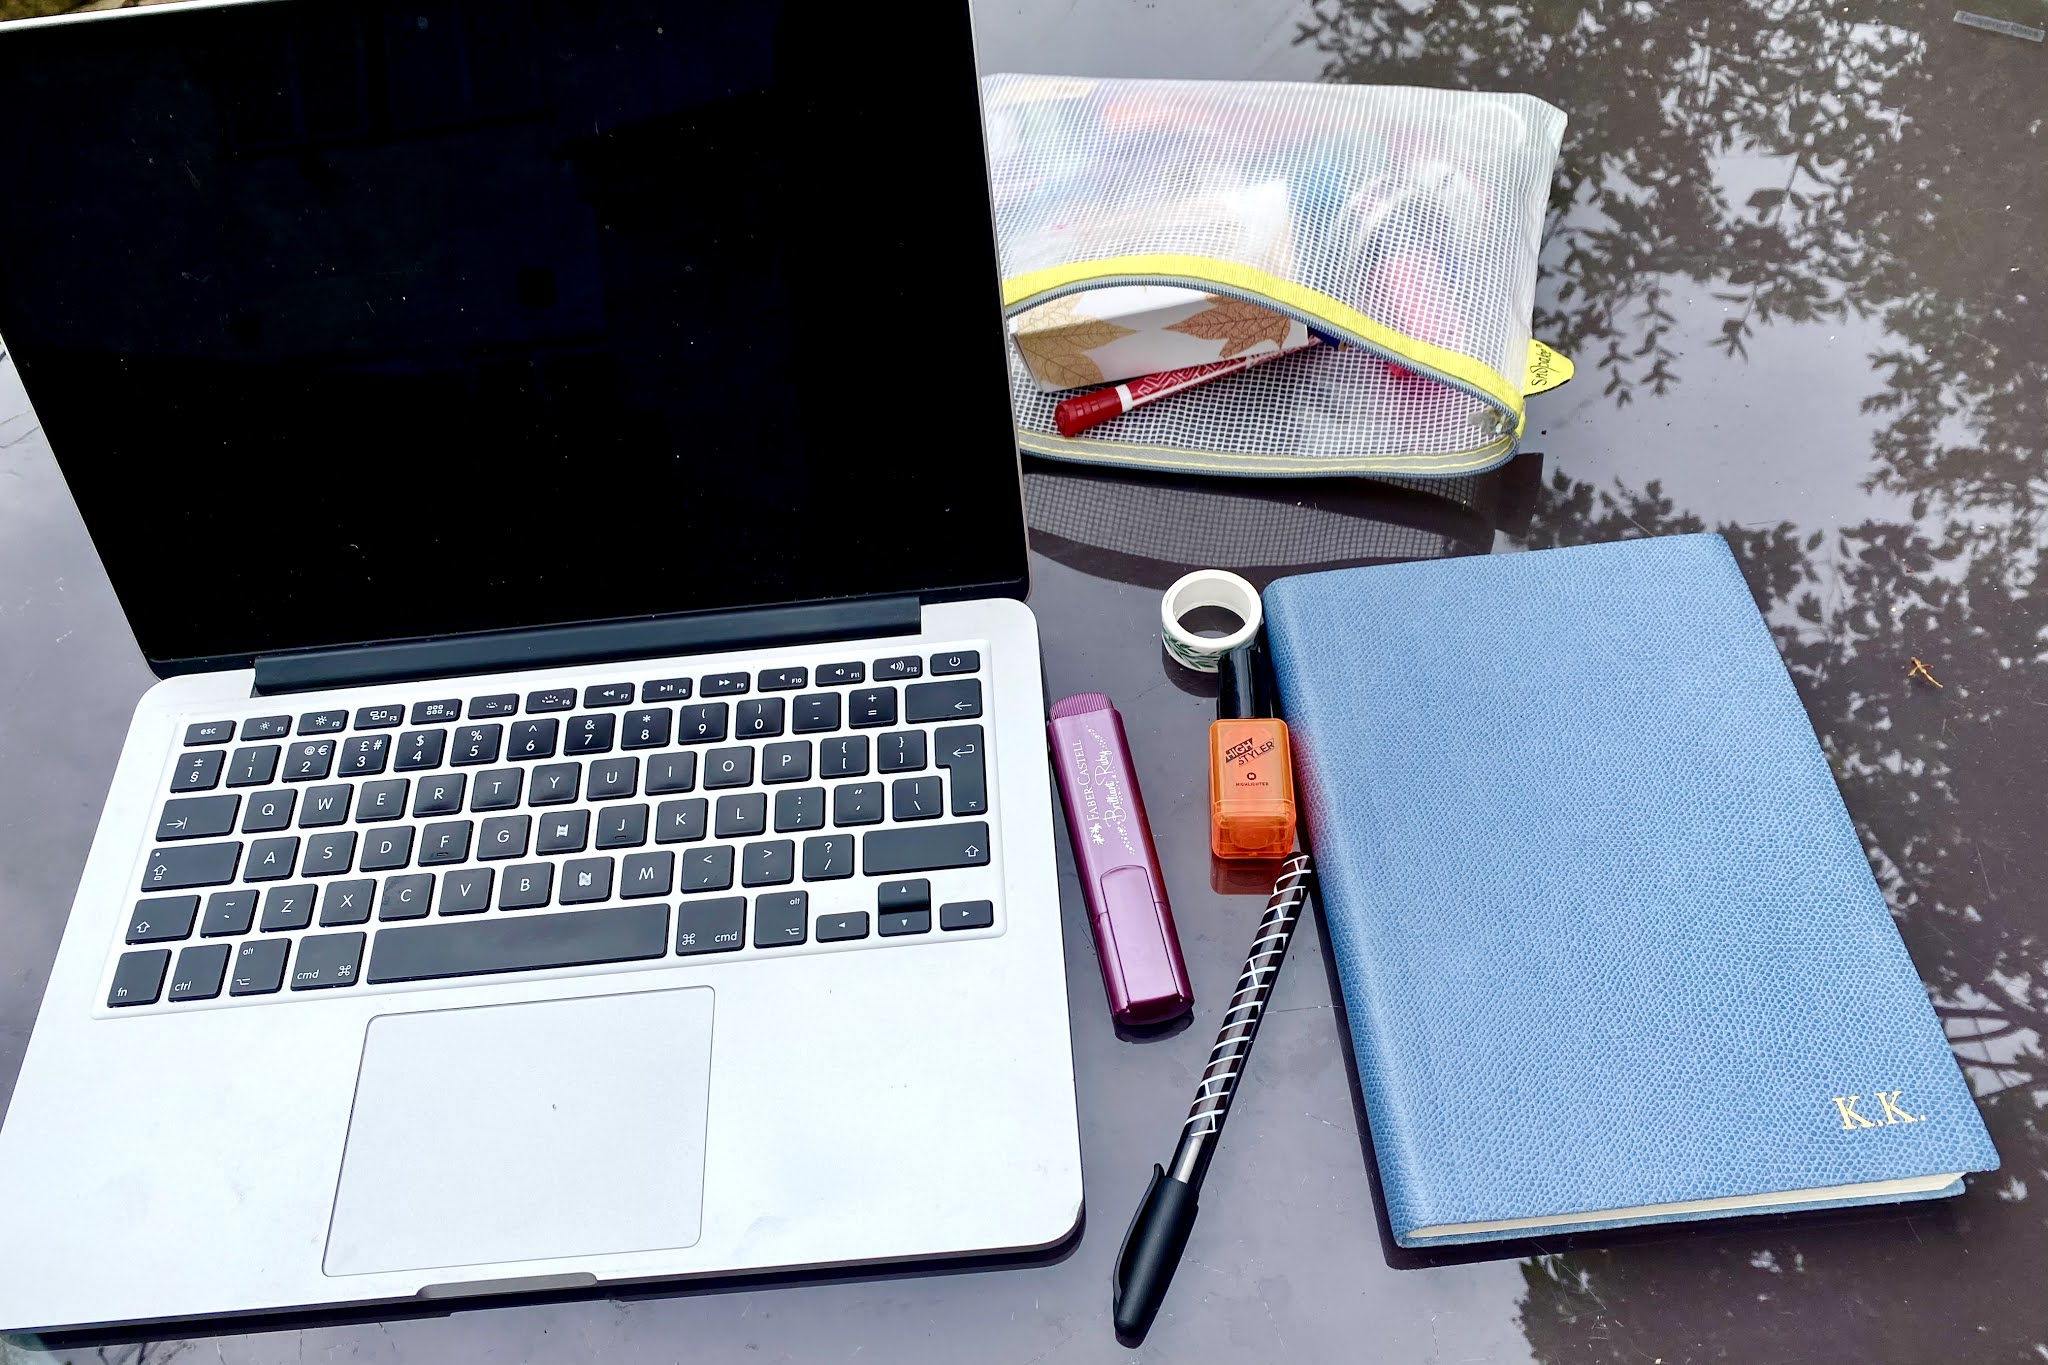 A laptop, note pad and pencil case on a glass garden table with trees reflected in it